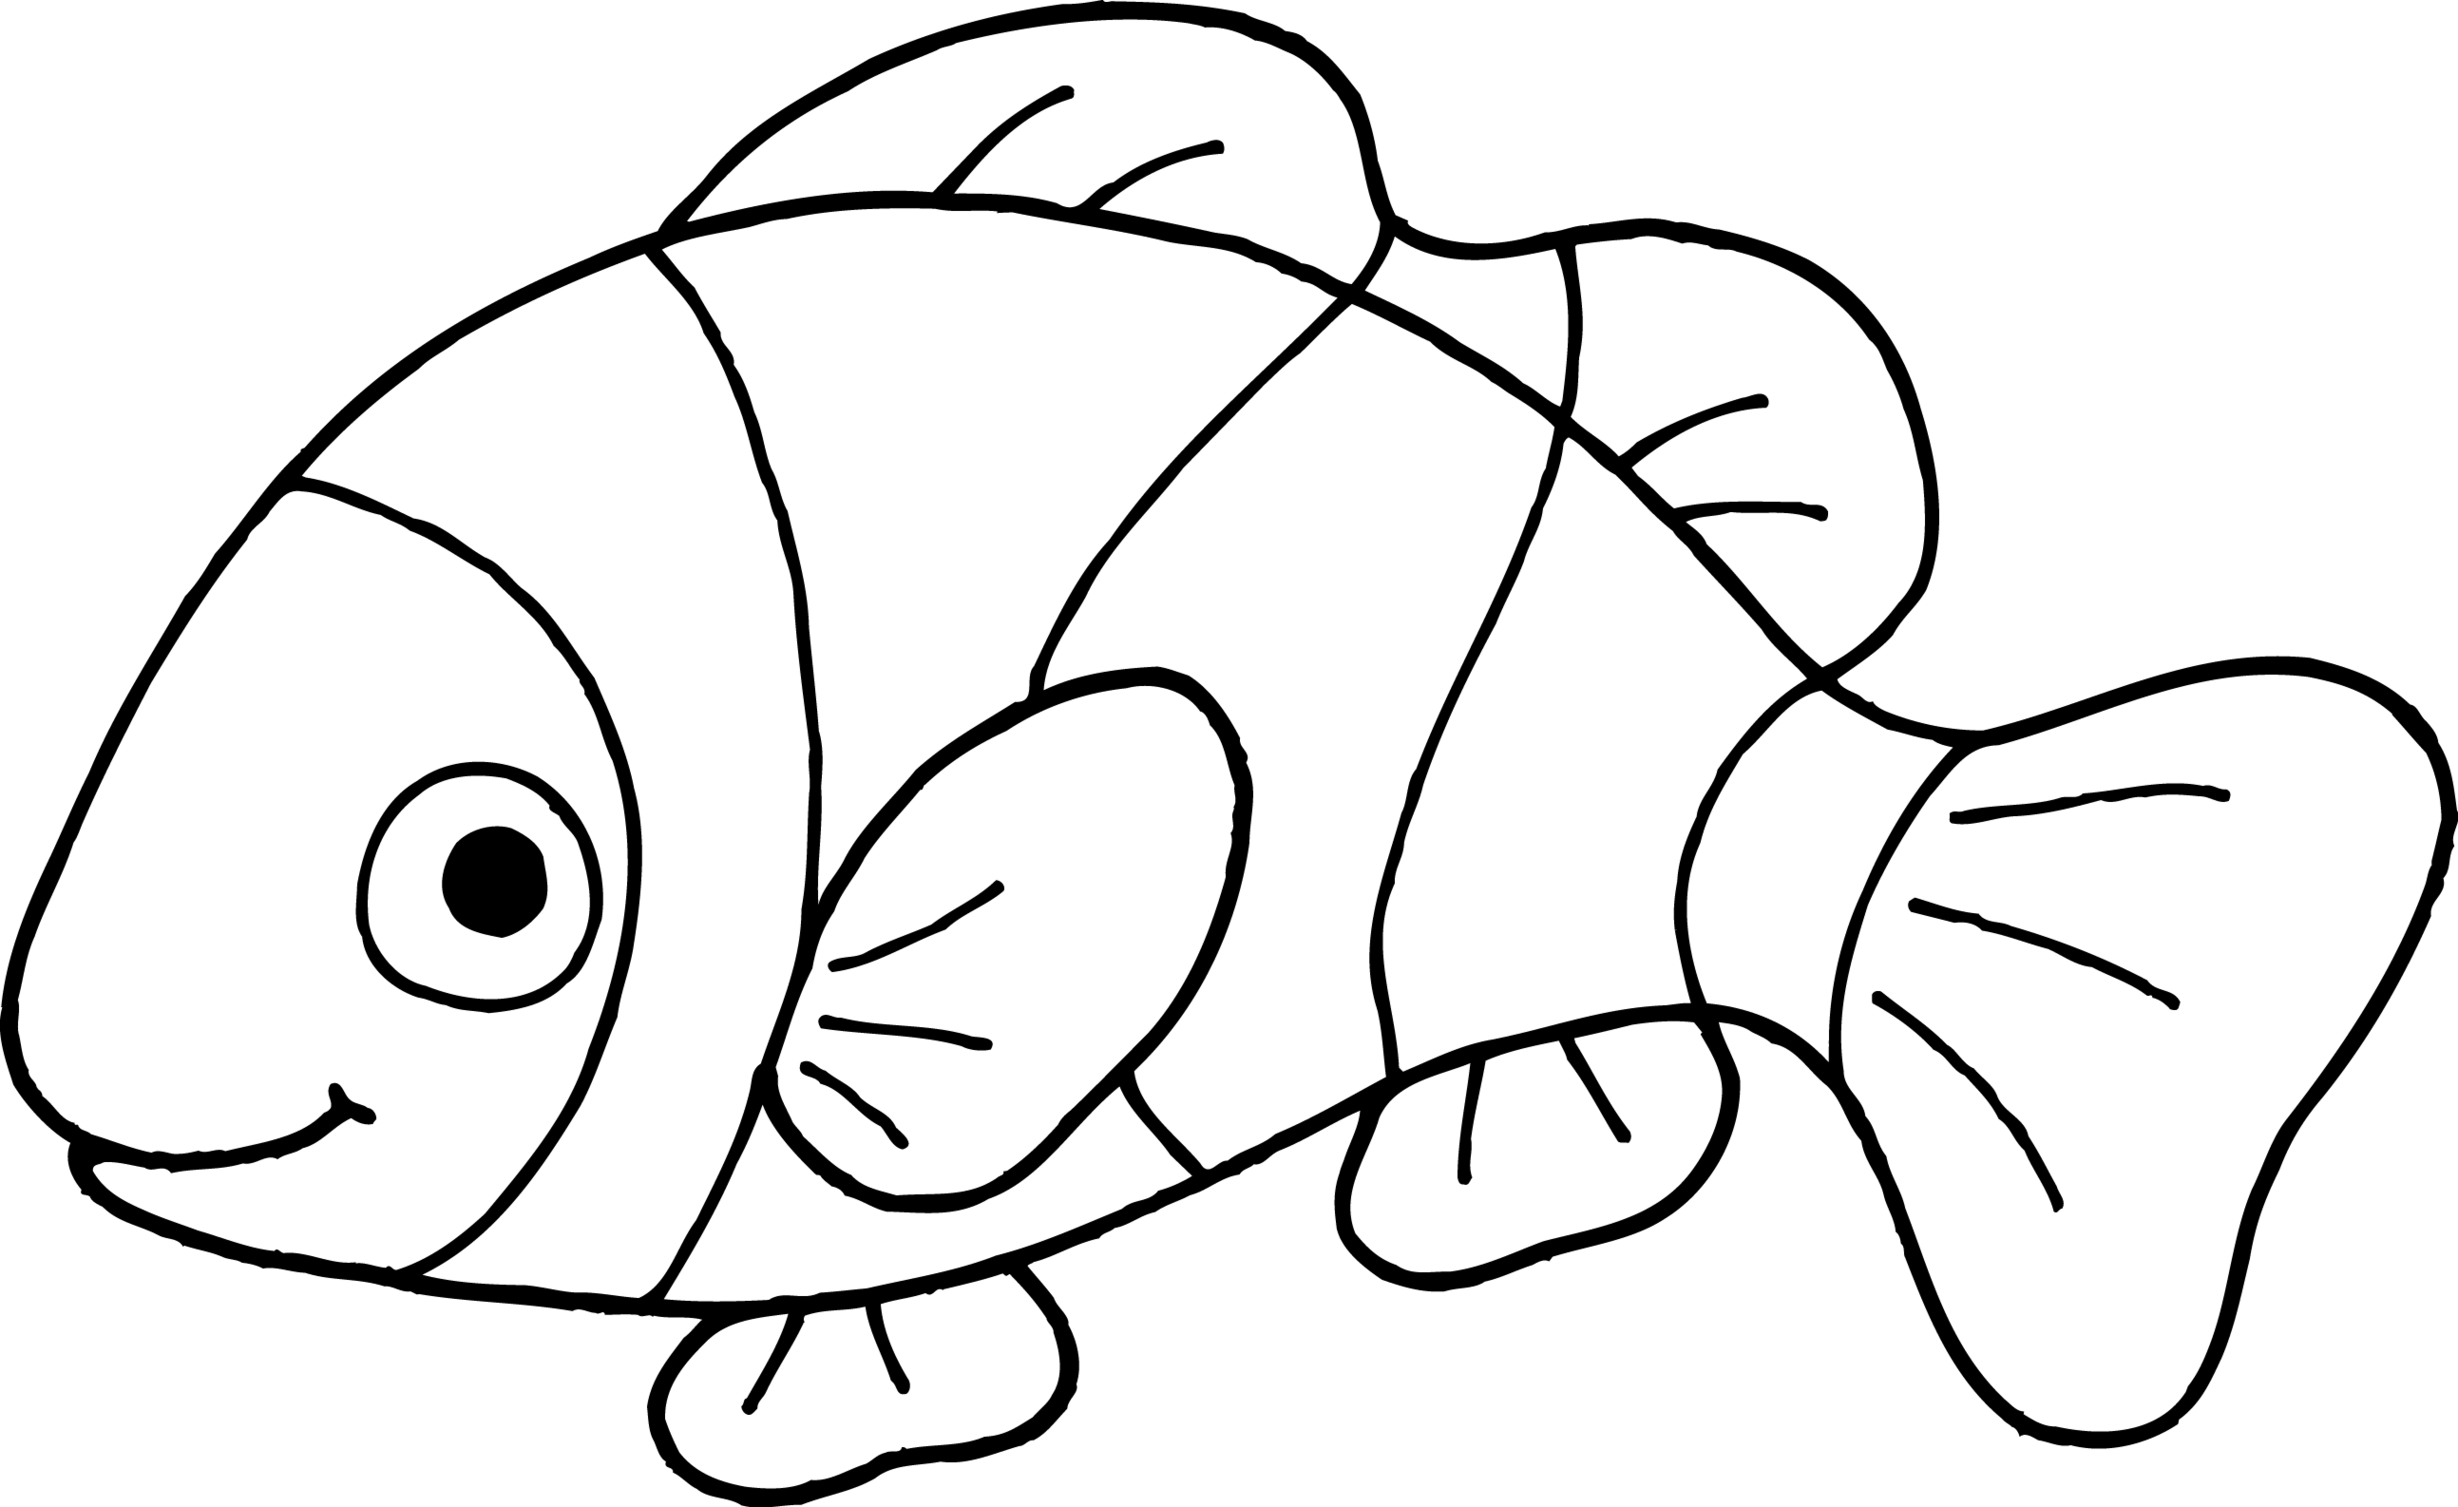 Nemo fish png transparent. Fishing clipart black and white